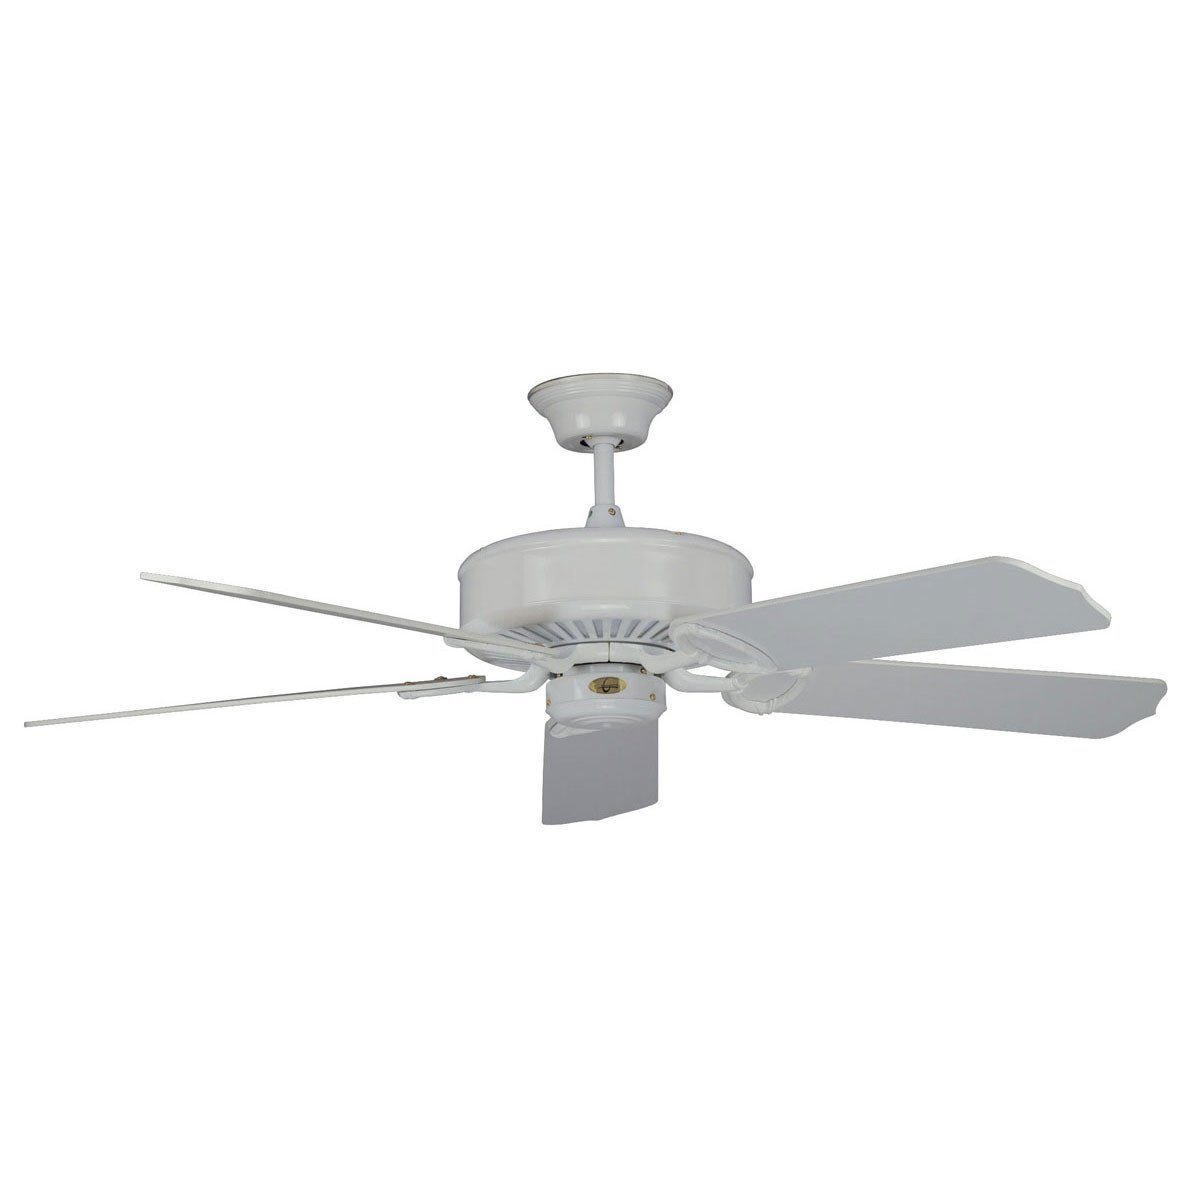 "Concord Fans 52"" Madison Energy Saver White Modern Ceiling Fan"